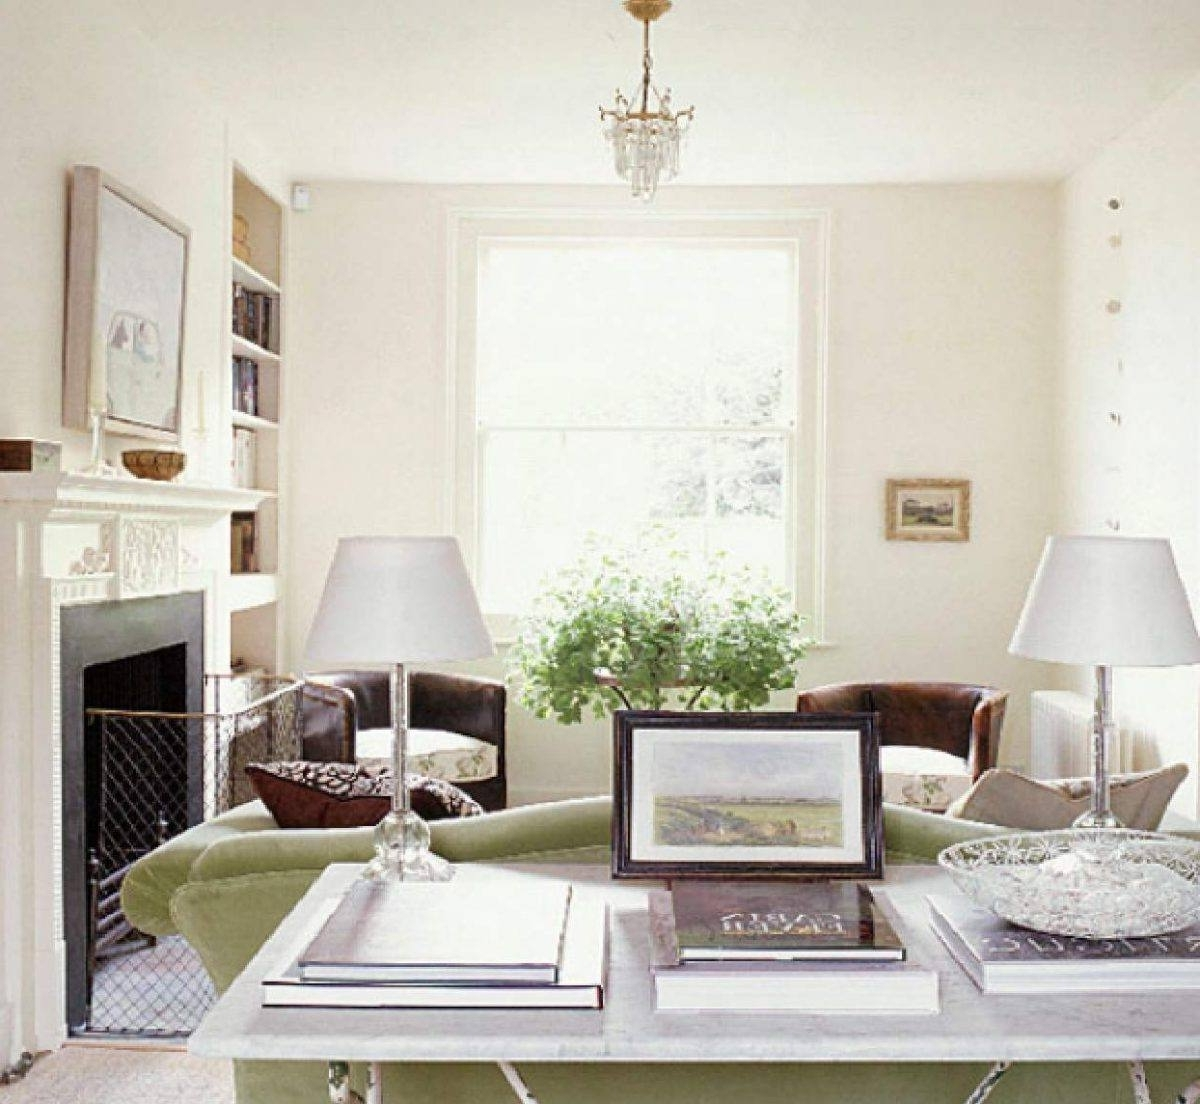 6 Things Keep In Mind Before Buying Table Lamps – Papertostone For Recent Living Room Coffee Table Lamps (View 2 of 20)